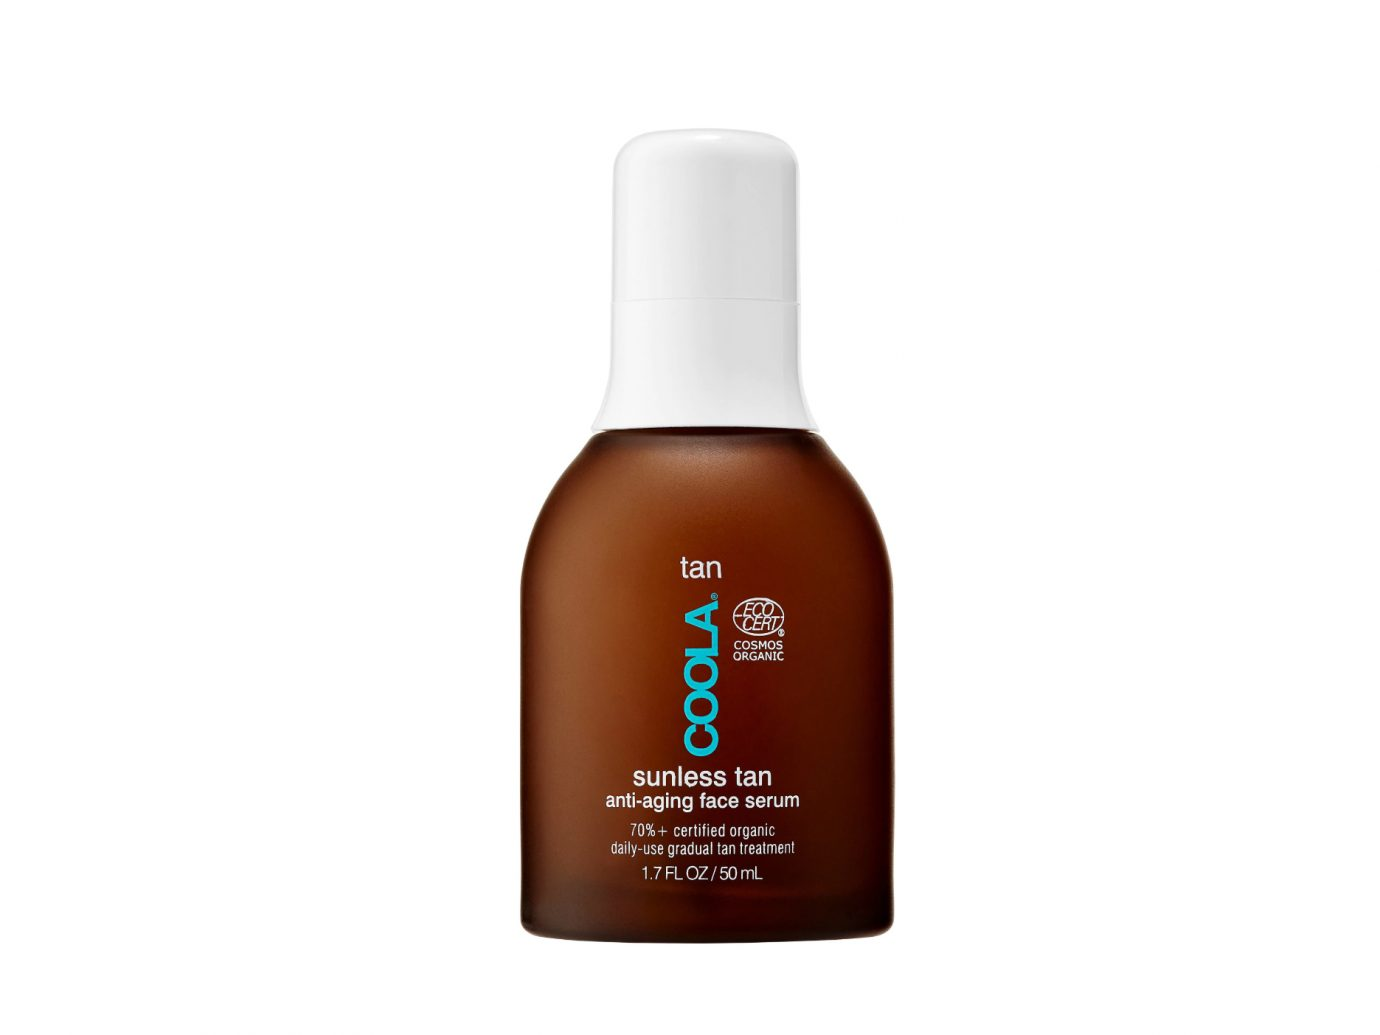 Summer Glow product Coola Sunless Tan Dry Oil Mist